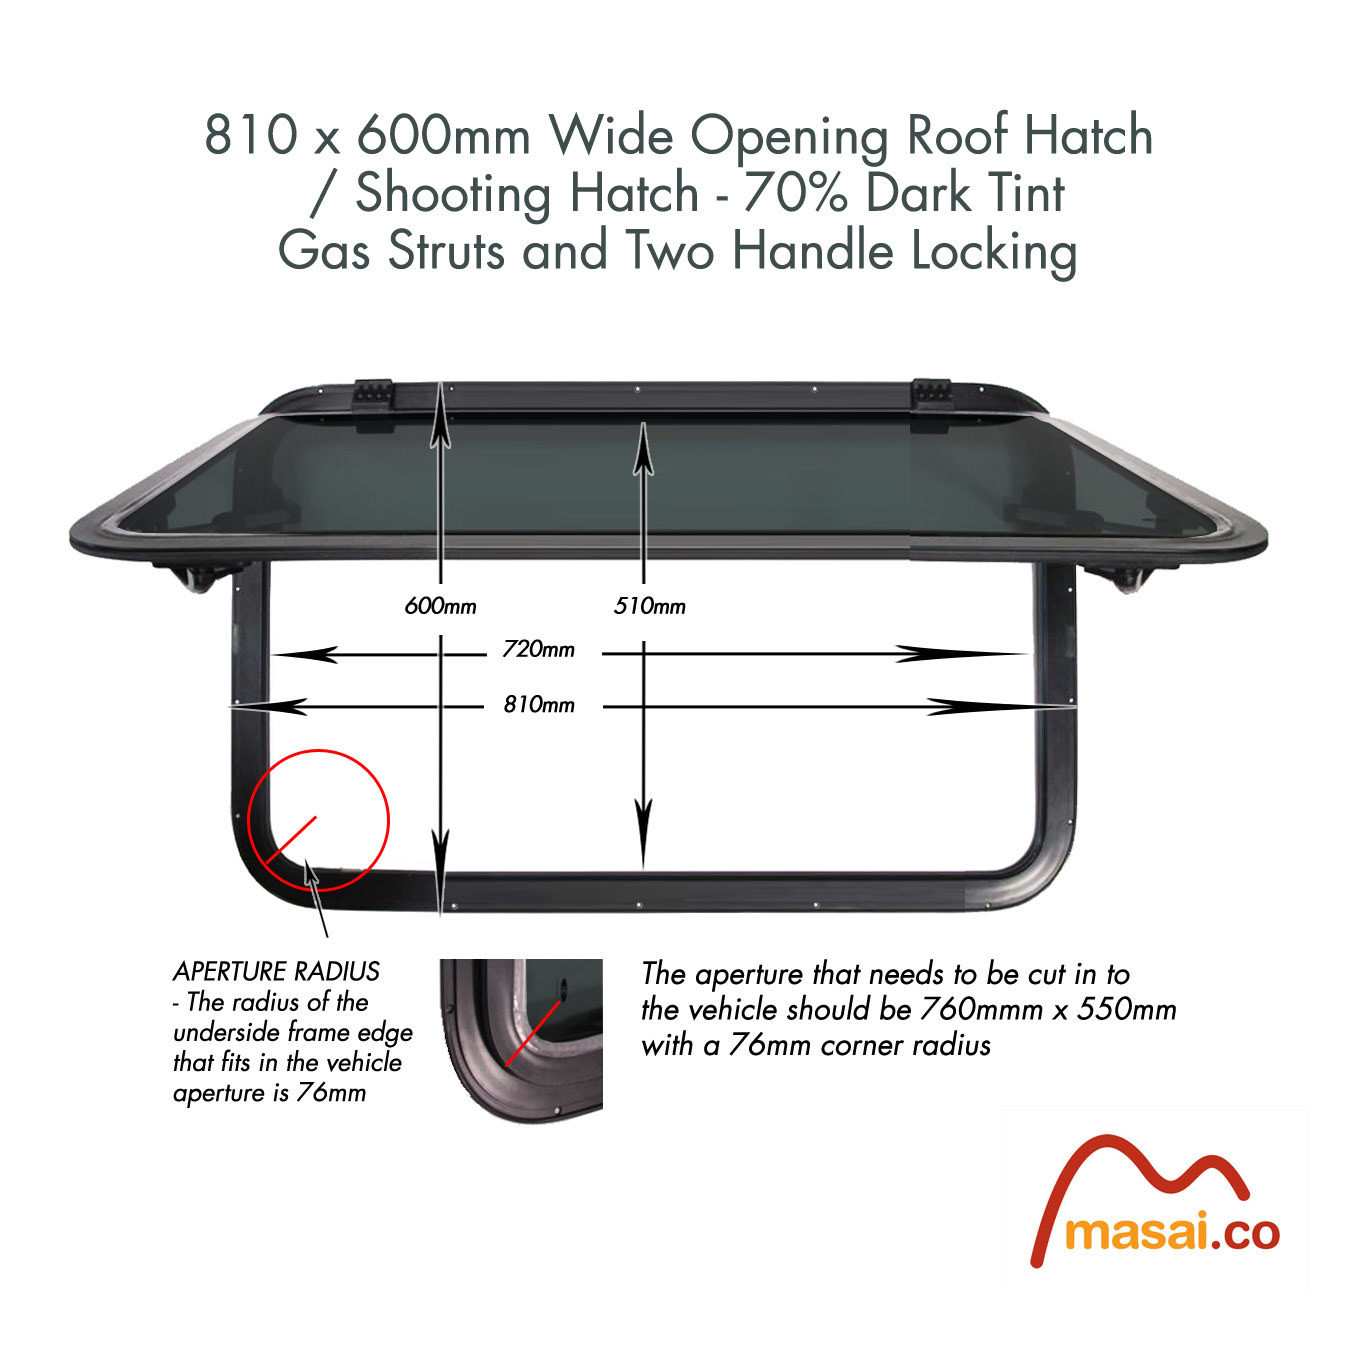 Wide Opening Roof Window / Shooting Hatch / Deck Hatch - 810 x 600 mm